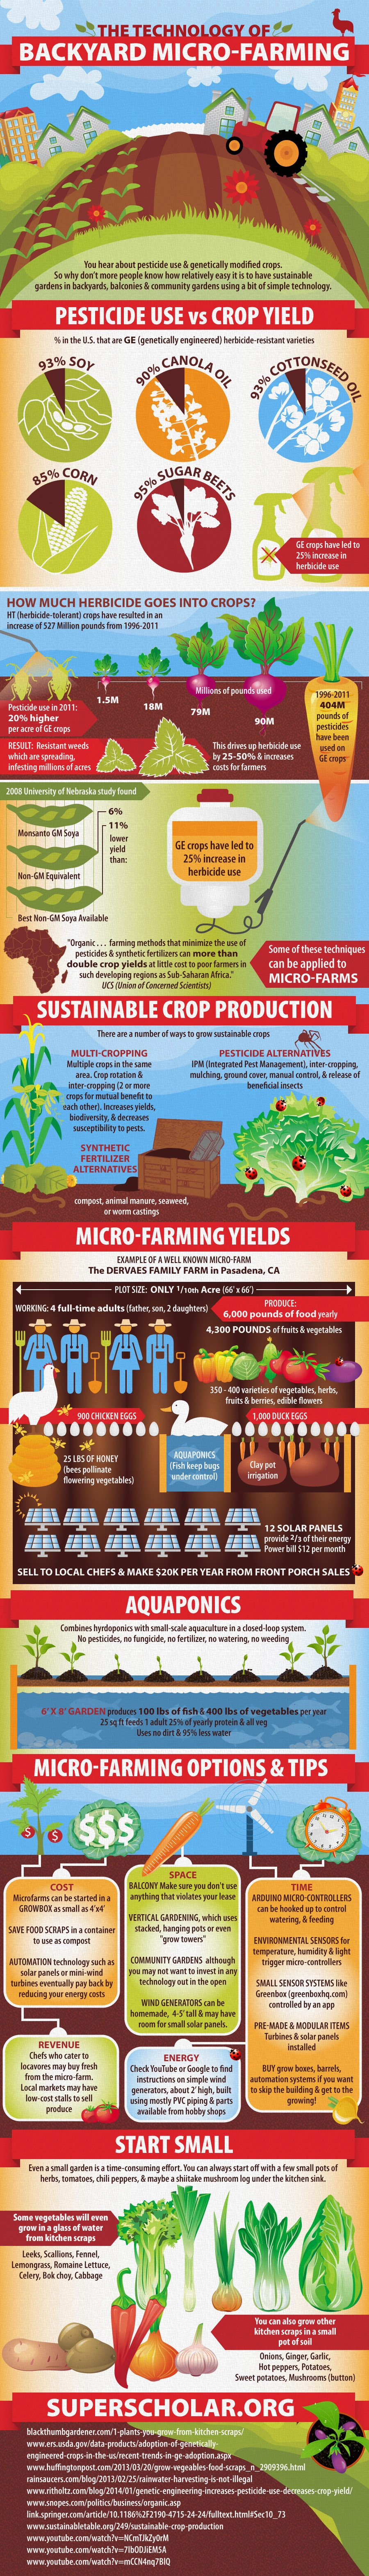 Backyard Micro-Farming